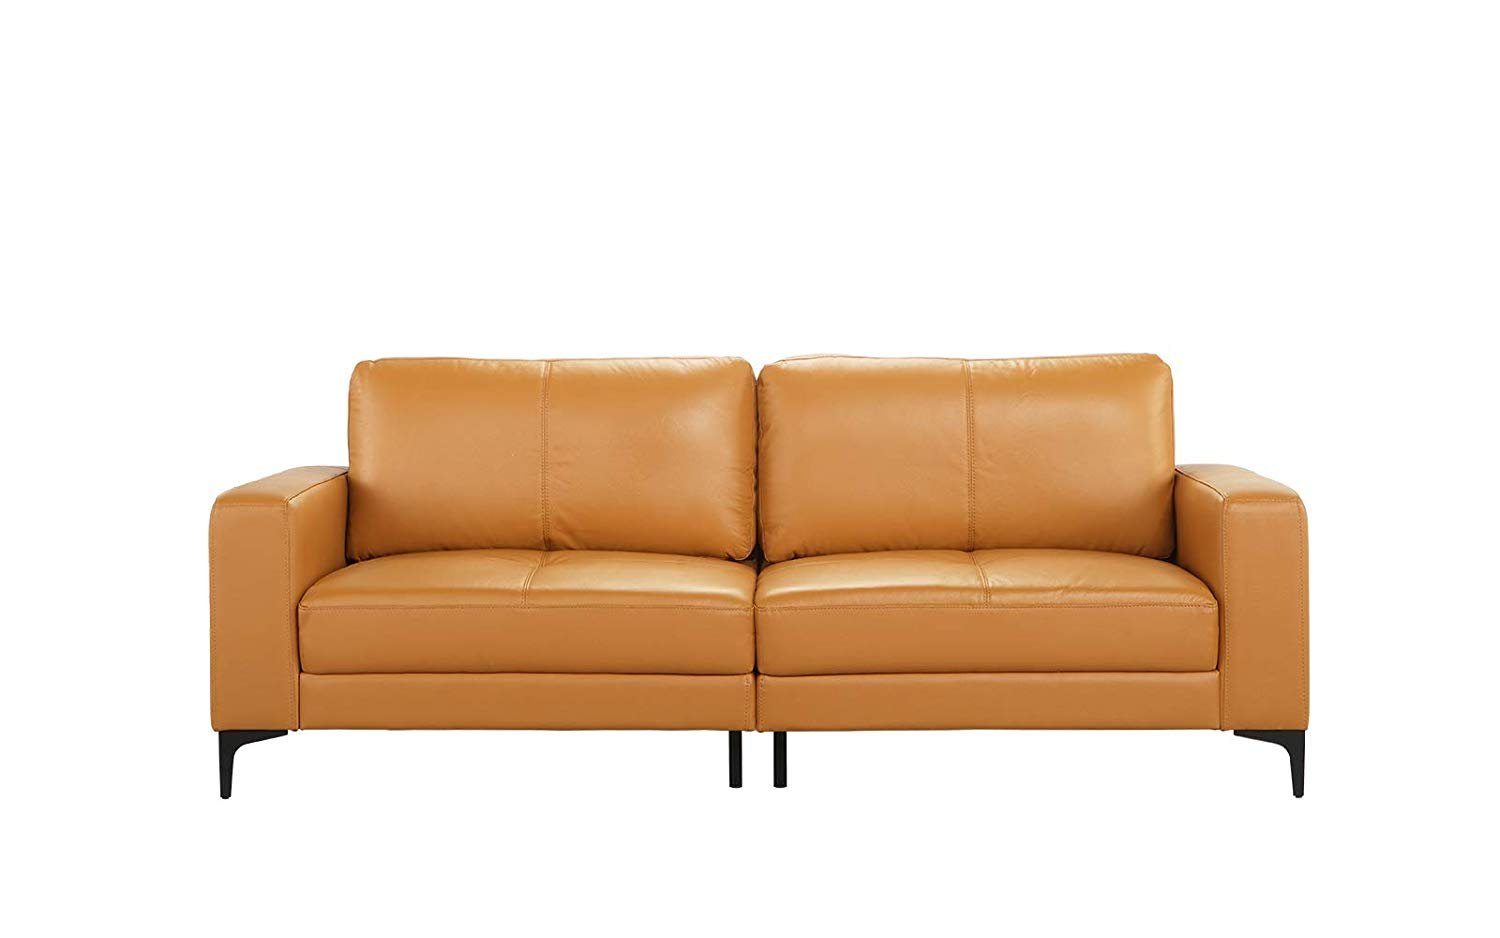 Details About Mid Century Modern Upholstered Leather Match Sofa 80 3 W Inch Couch Light Brown